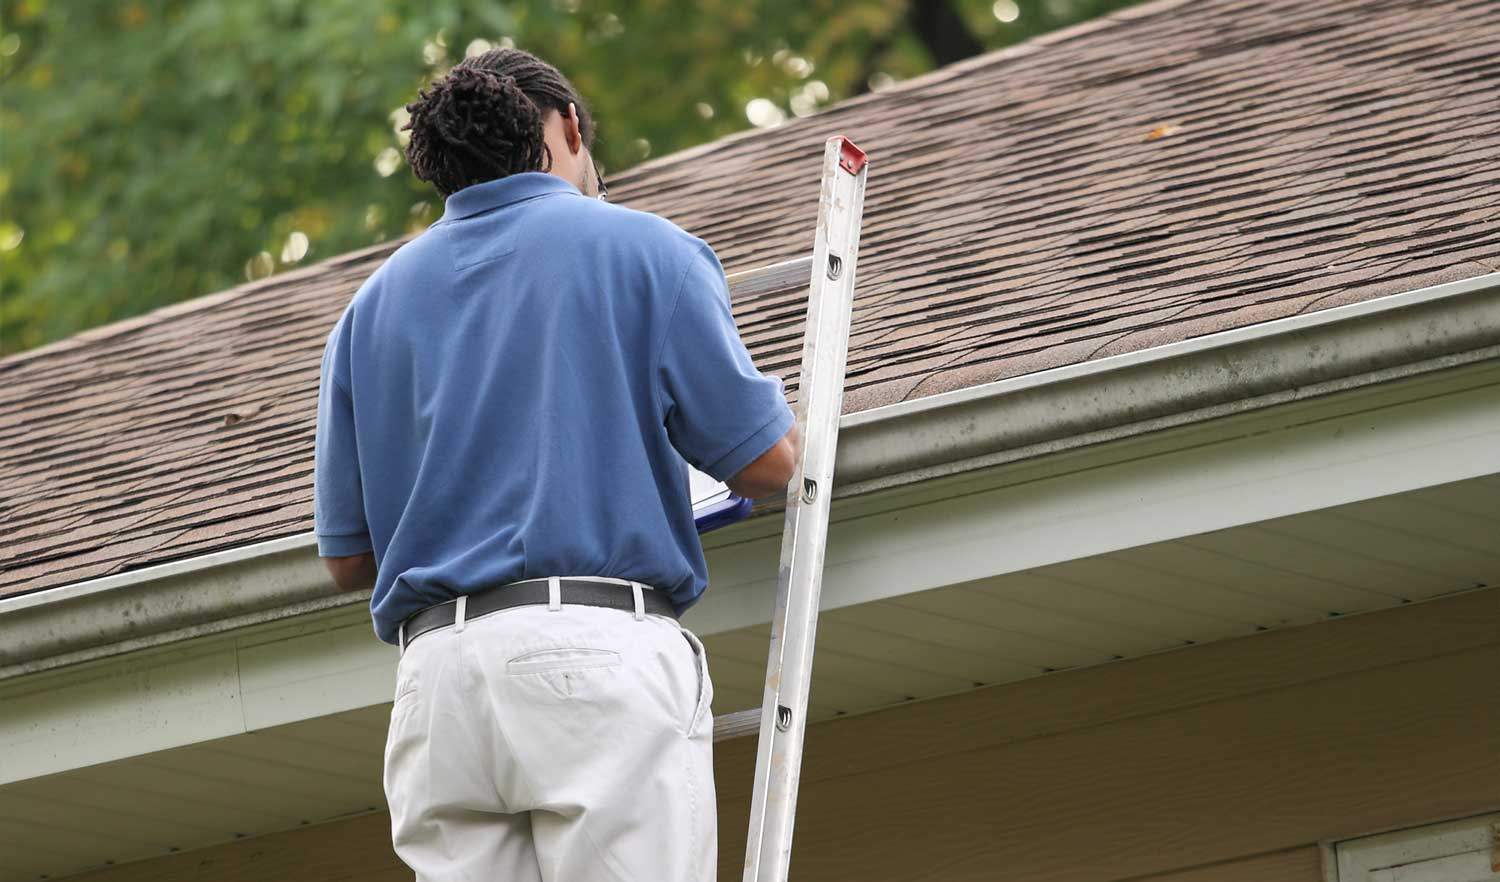 Roof Inspection Cost Average 2019 Prices Inch Calculator